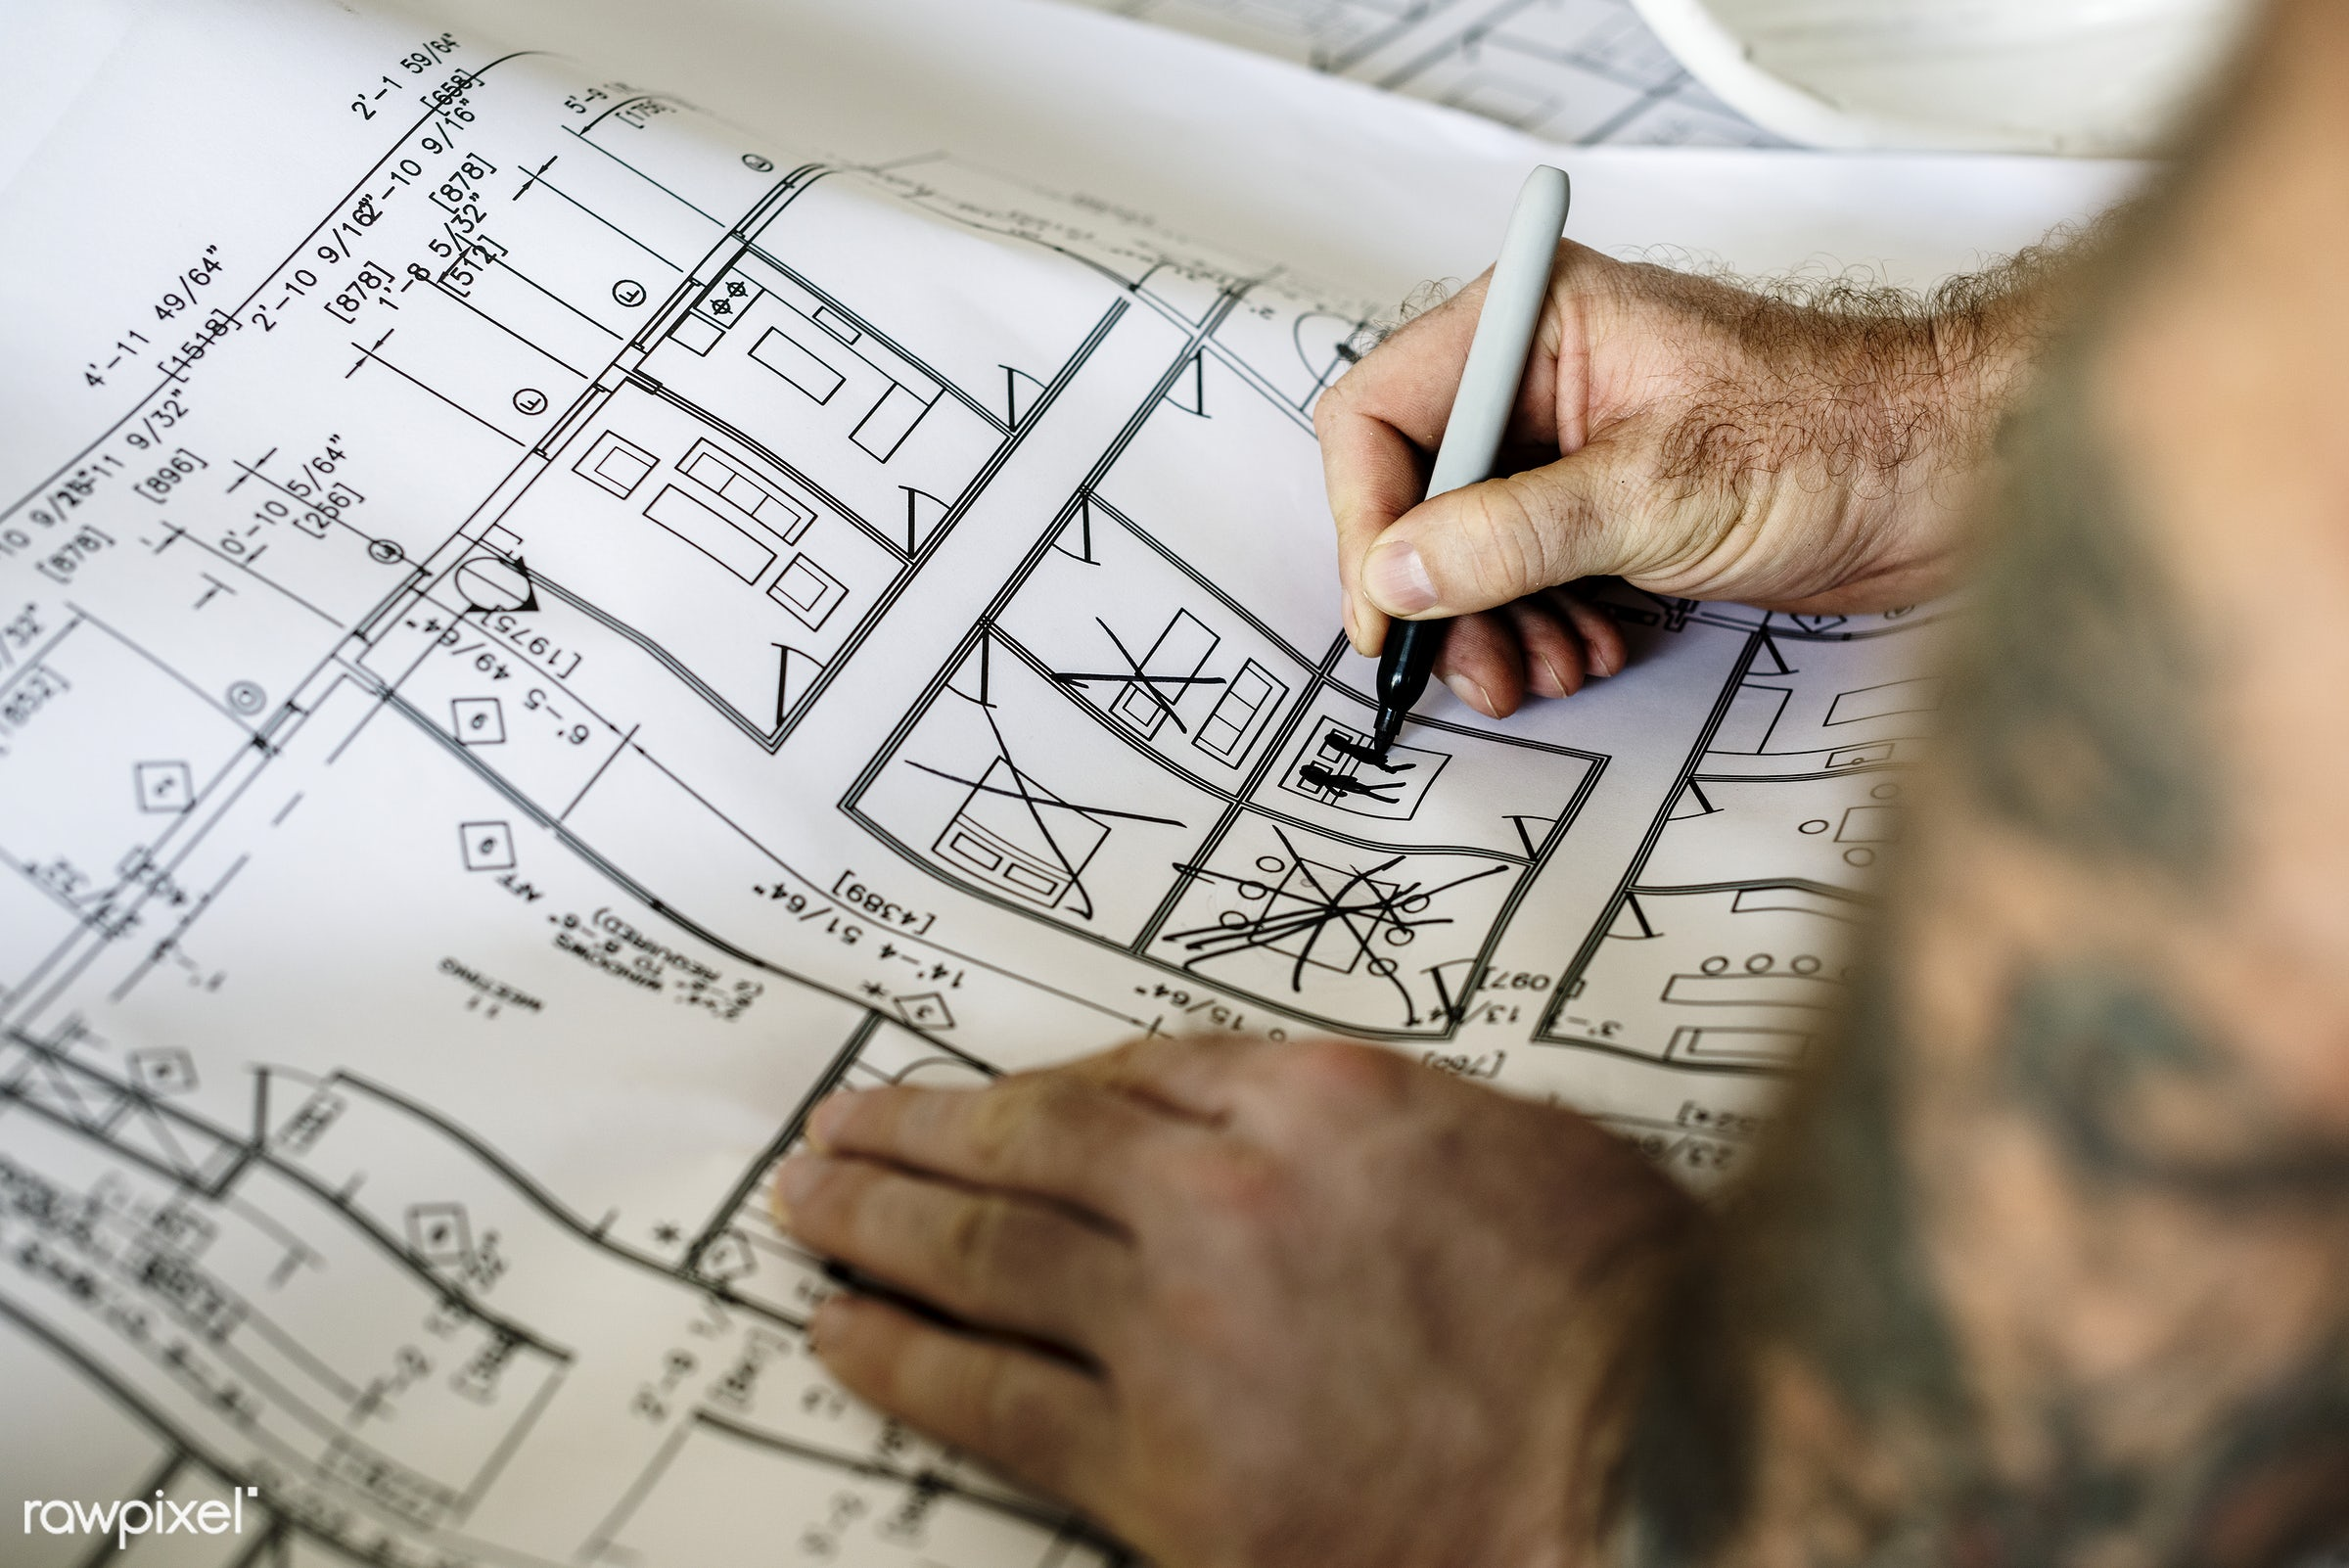 architect, architectural, architecture, blueprint, build, construction, design, document, draft, drafting, drawing, engineer...